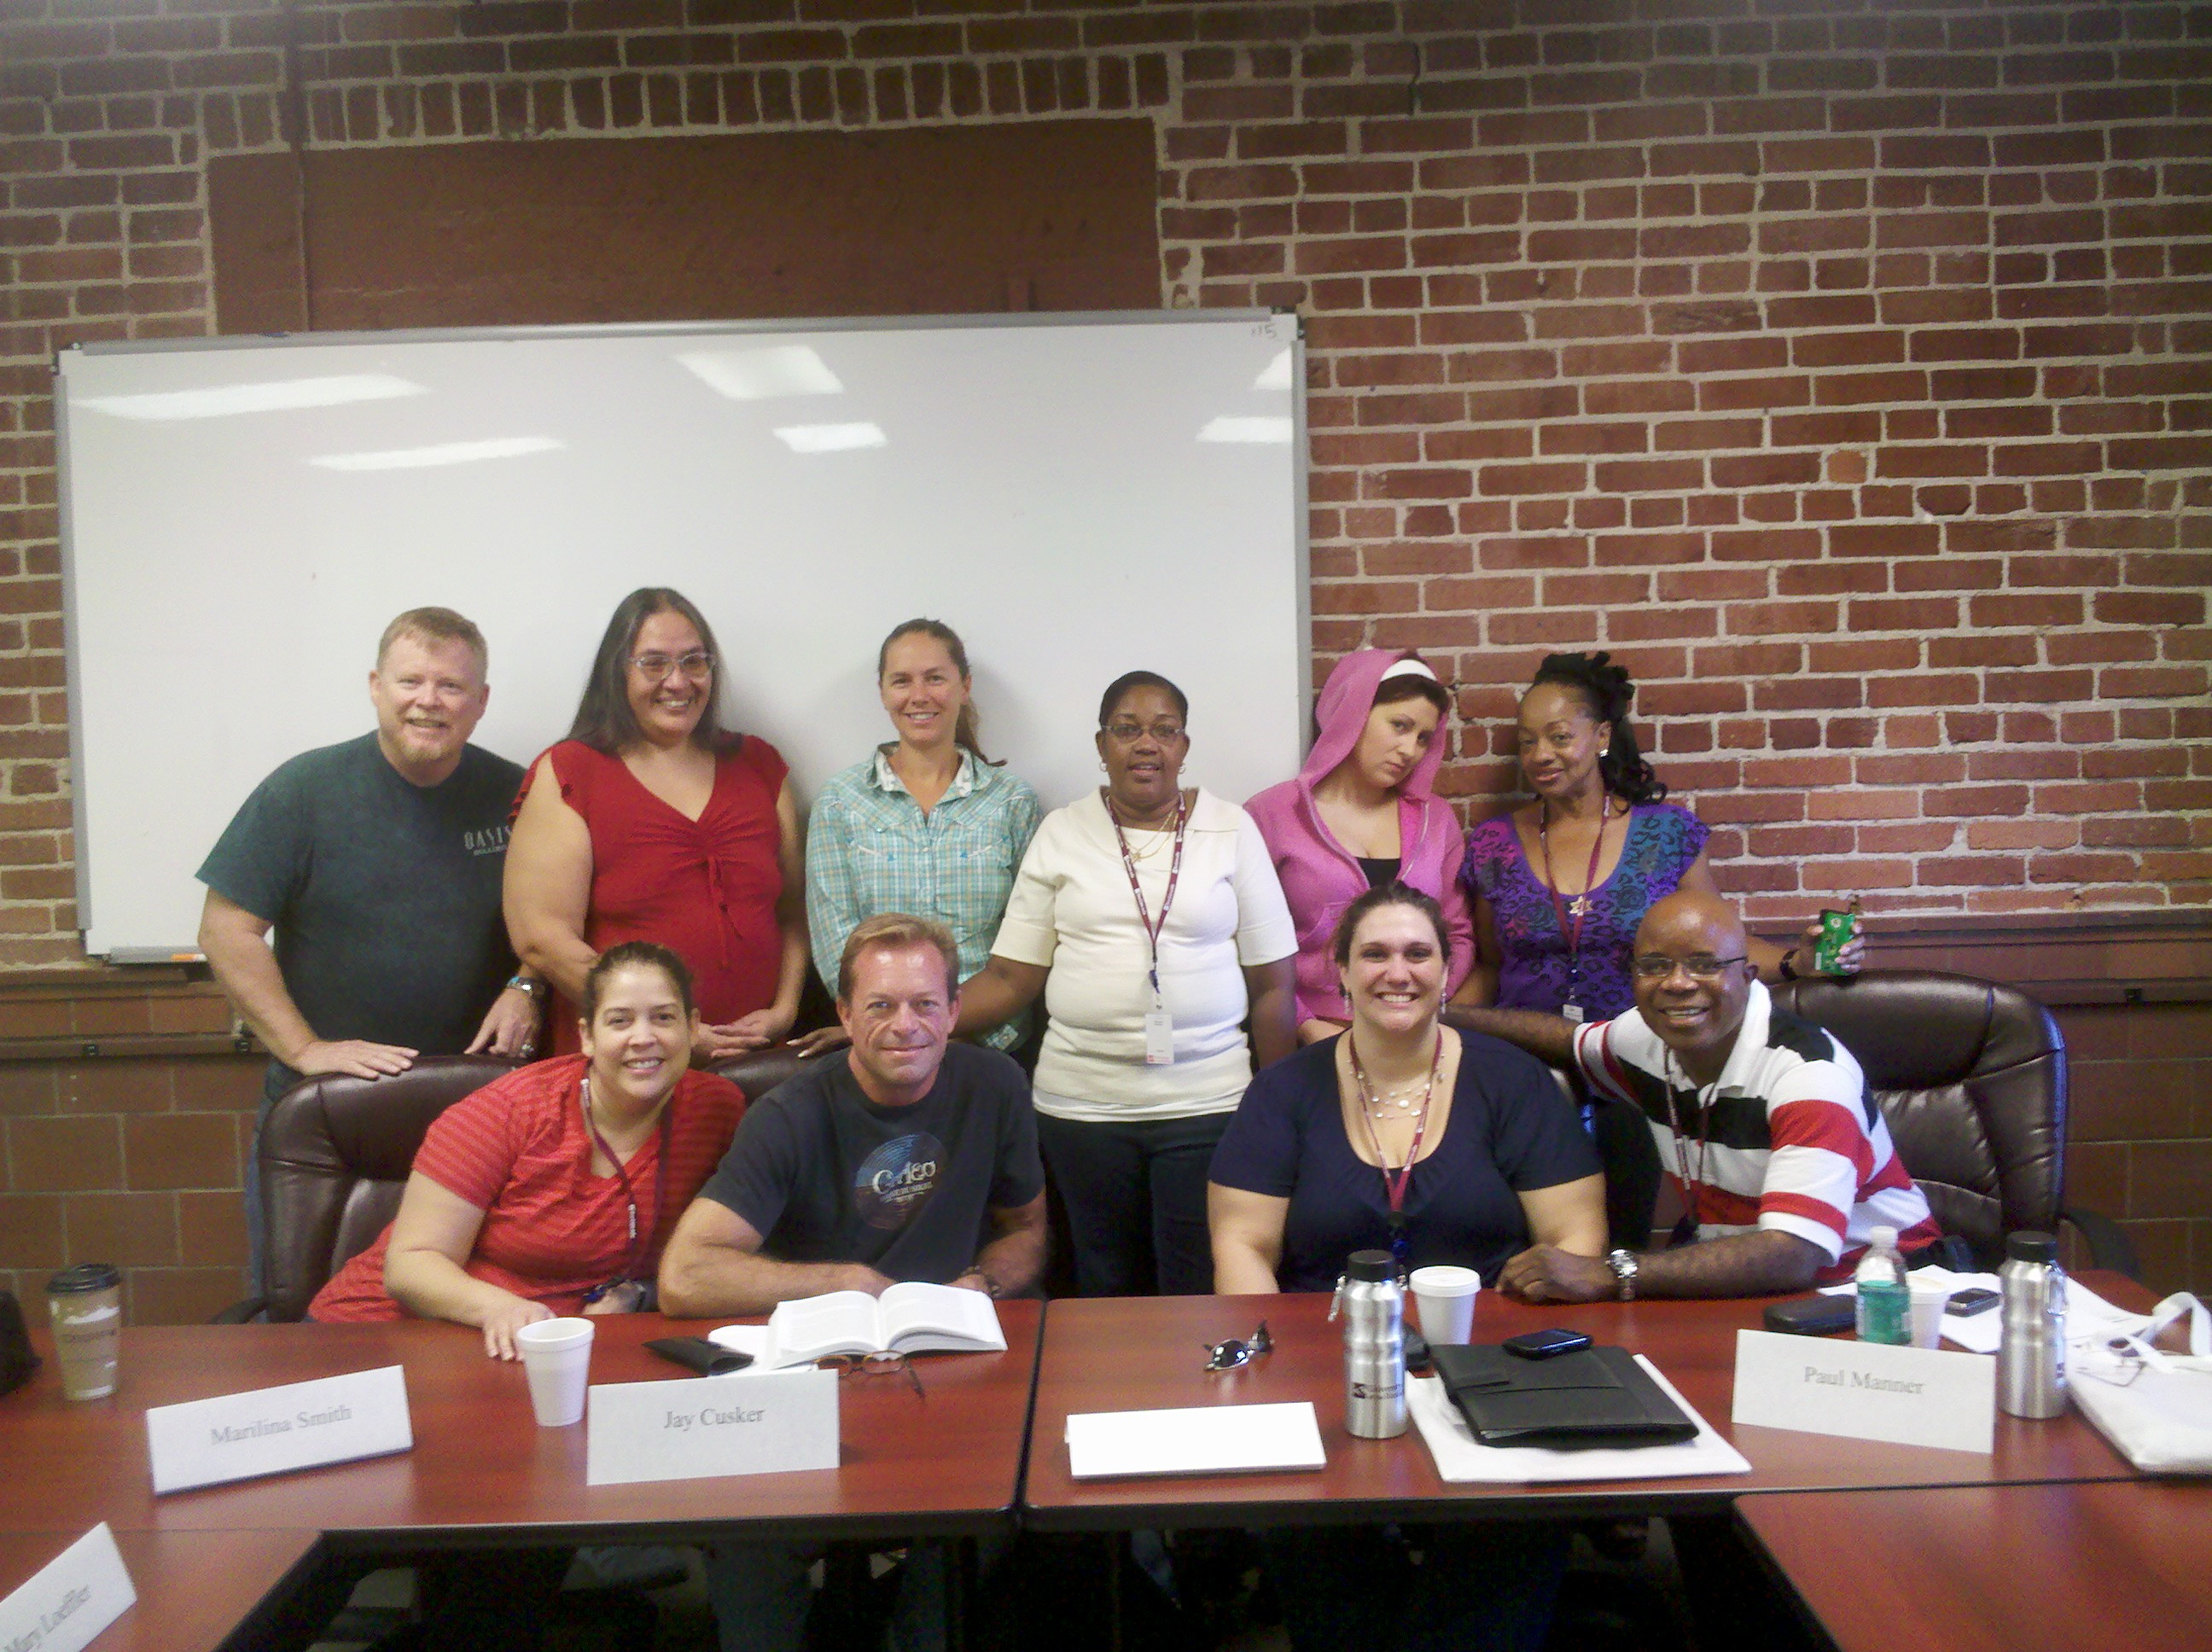 Dr.Lisa Meek and Dr. Tim Rice's ORG 7272 Group Process Weekend Intensive Class